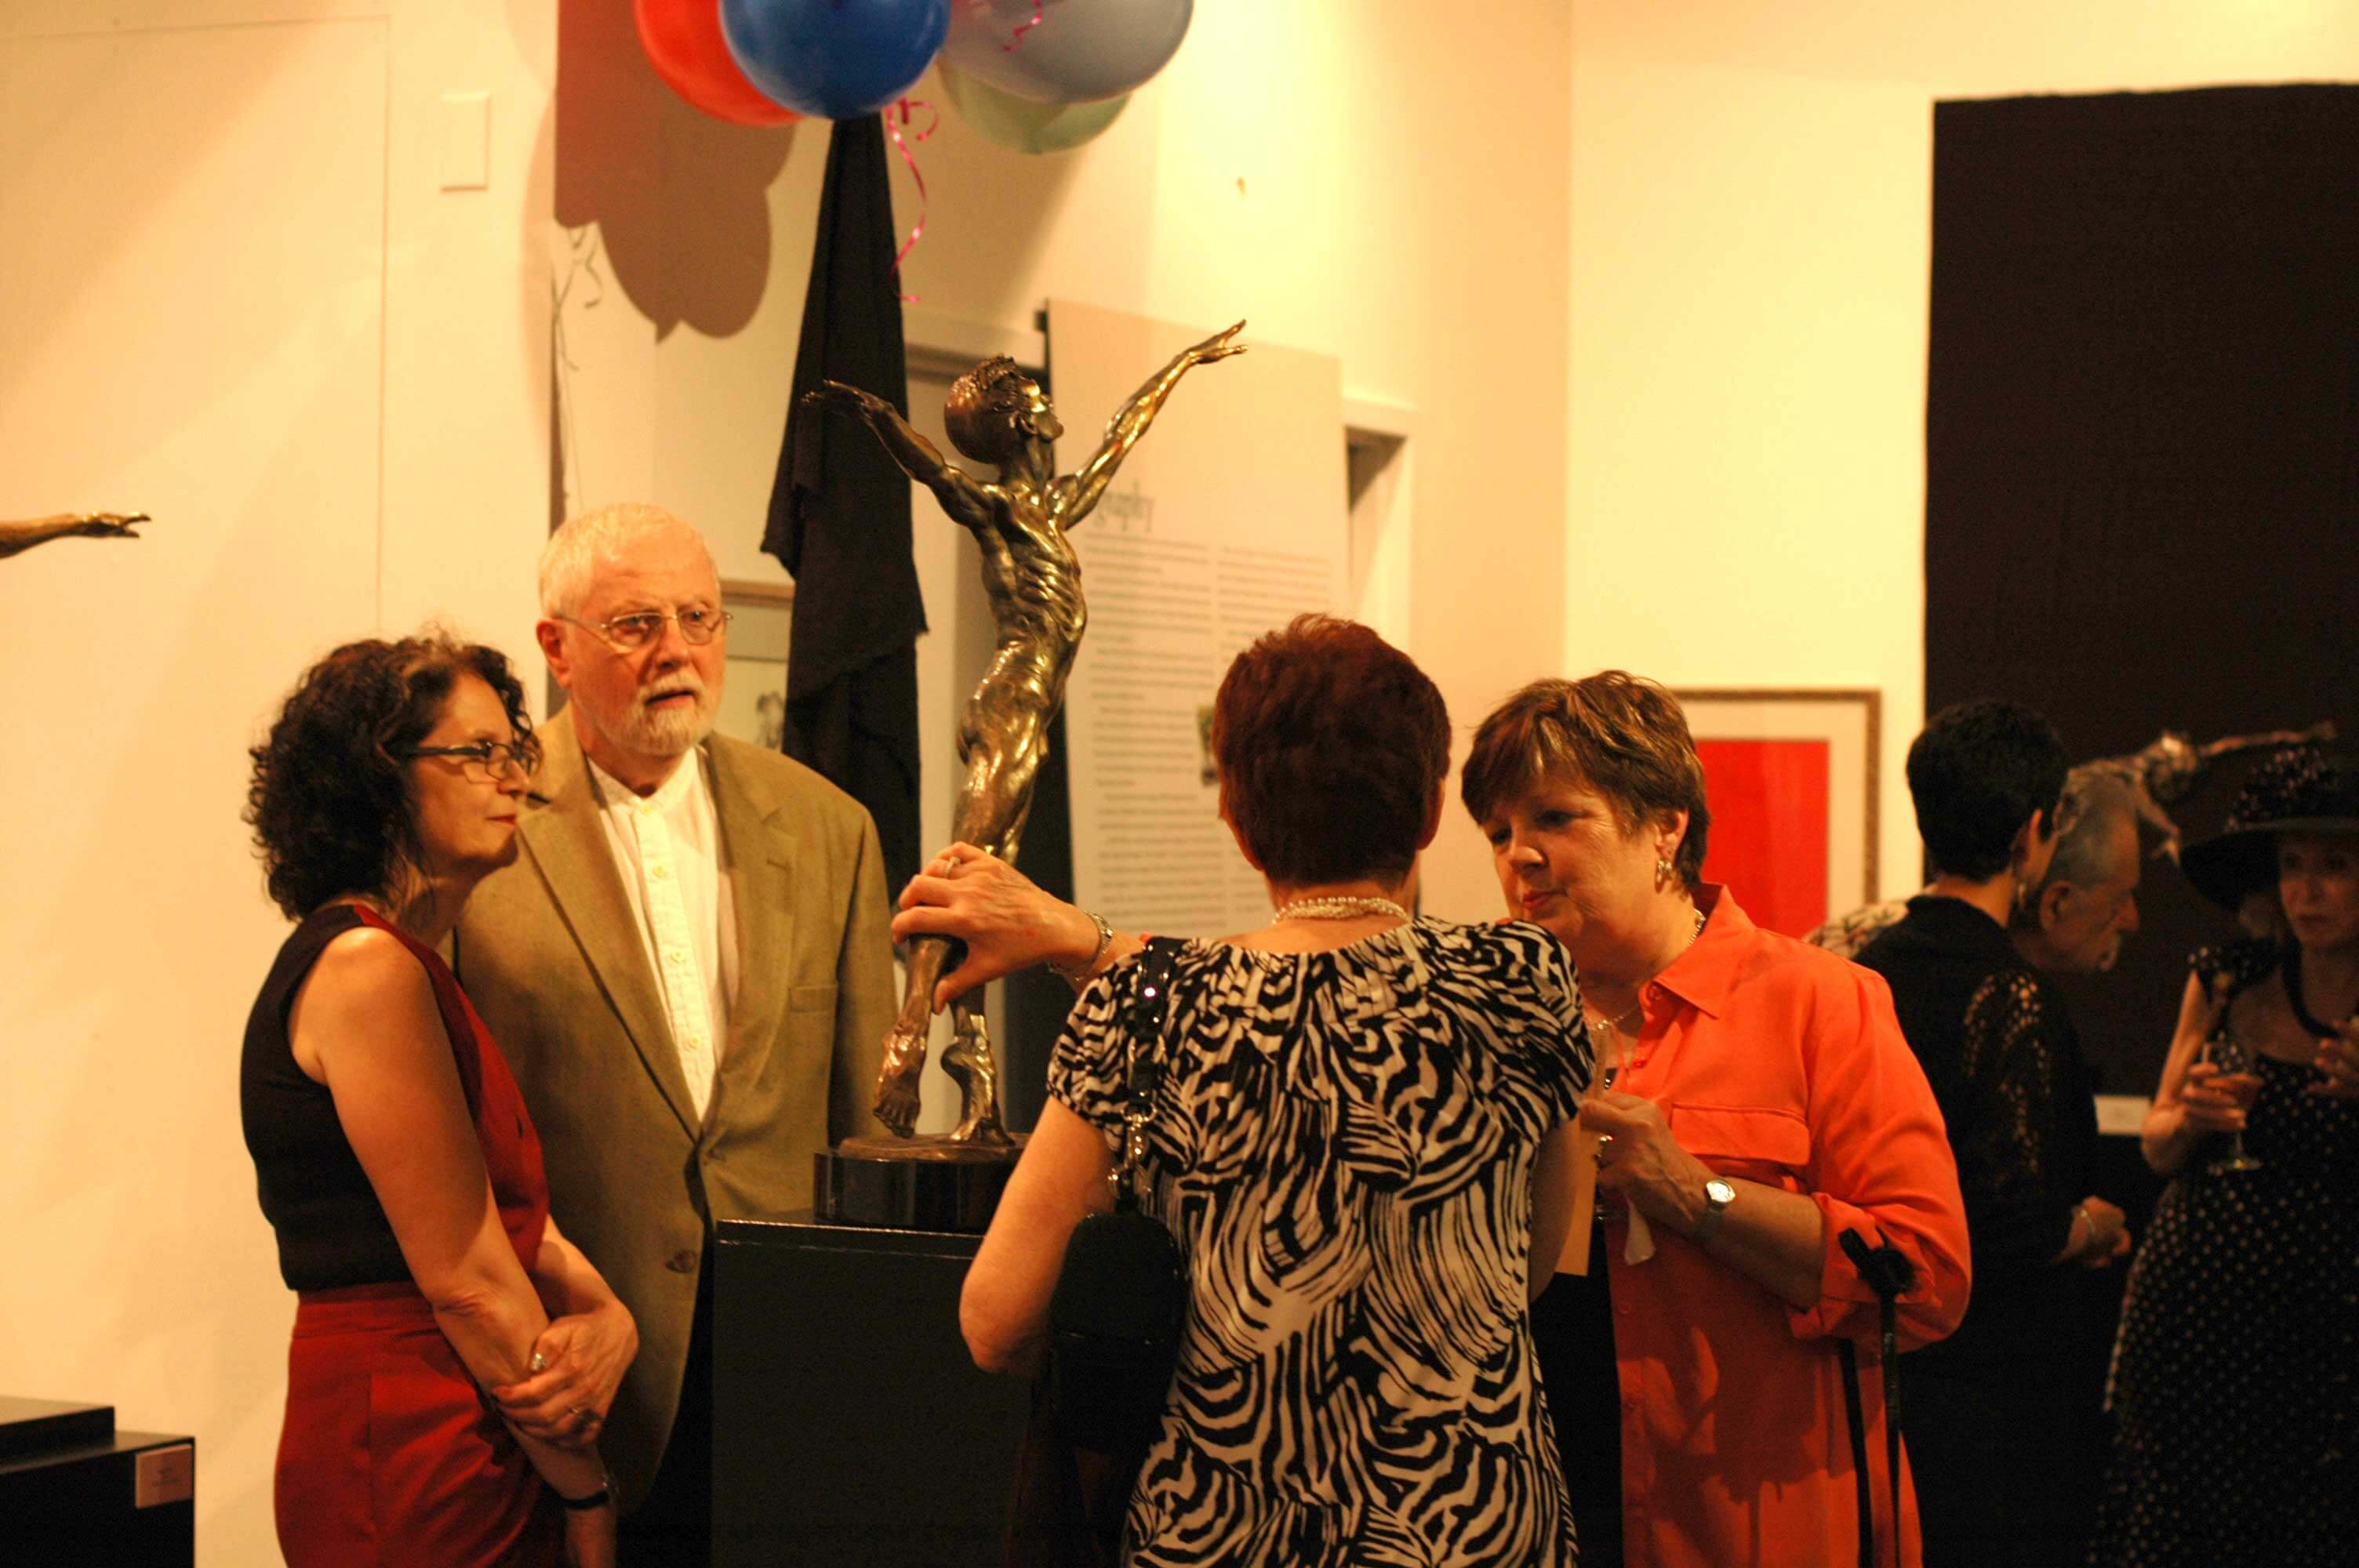 Museum visitors viewing a bronze dance sculpture by Andrew DeVries at the National Museum of Dance during the Opening Reception of Homage to Dance